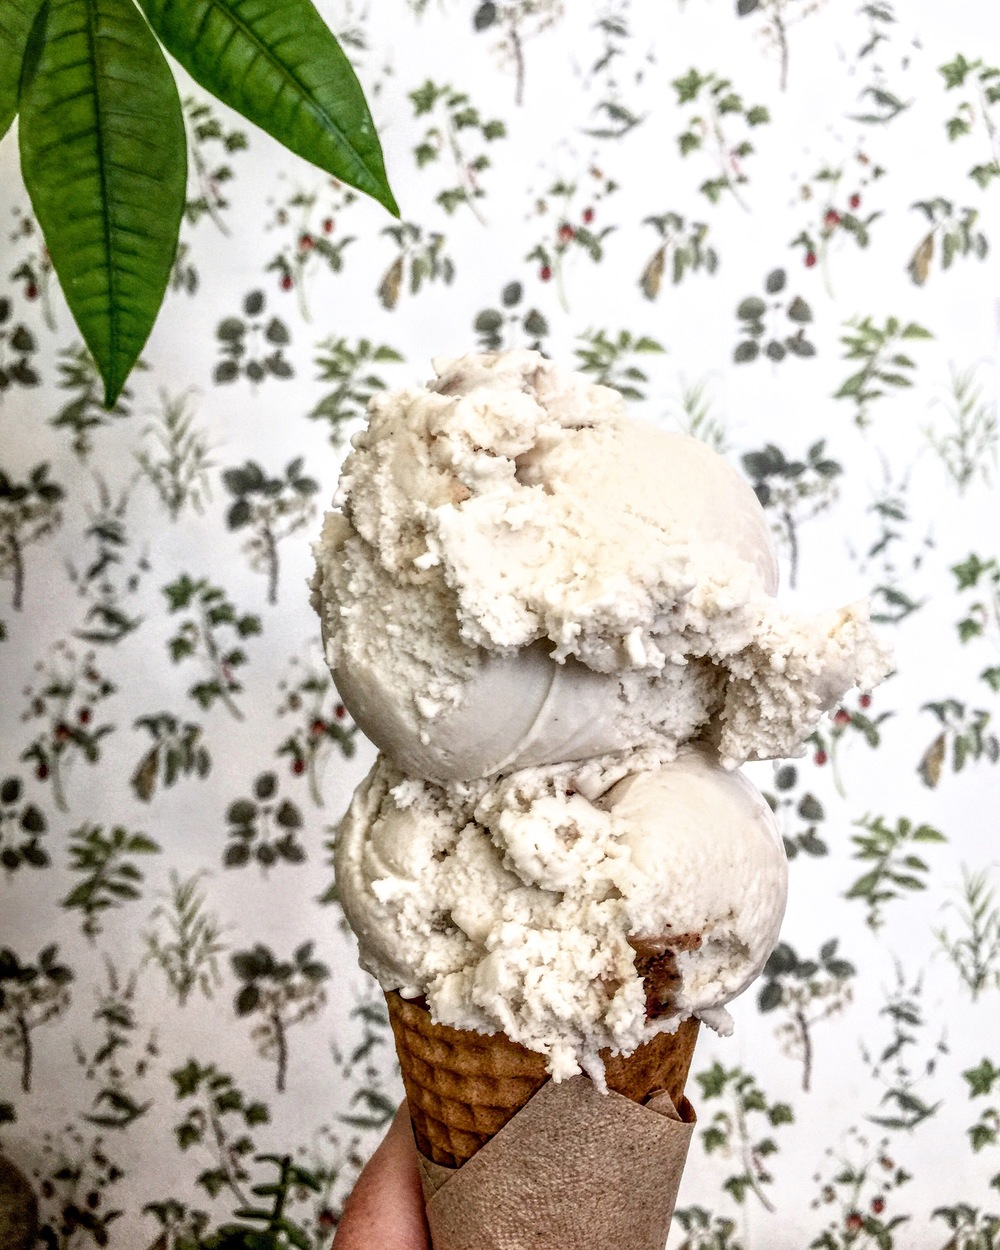 Summer cool down at  Van  Leeuwen   - they have the best vegan ice cream